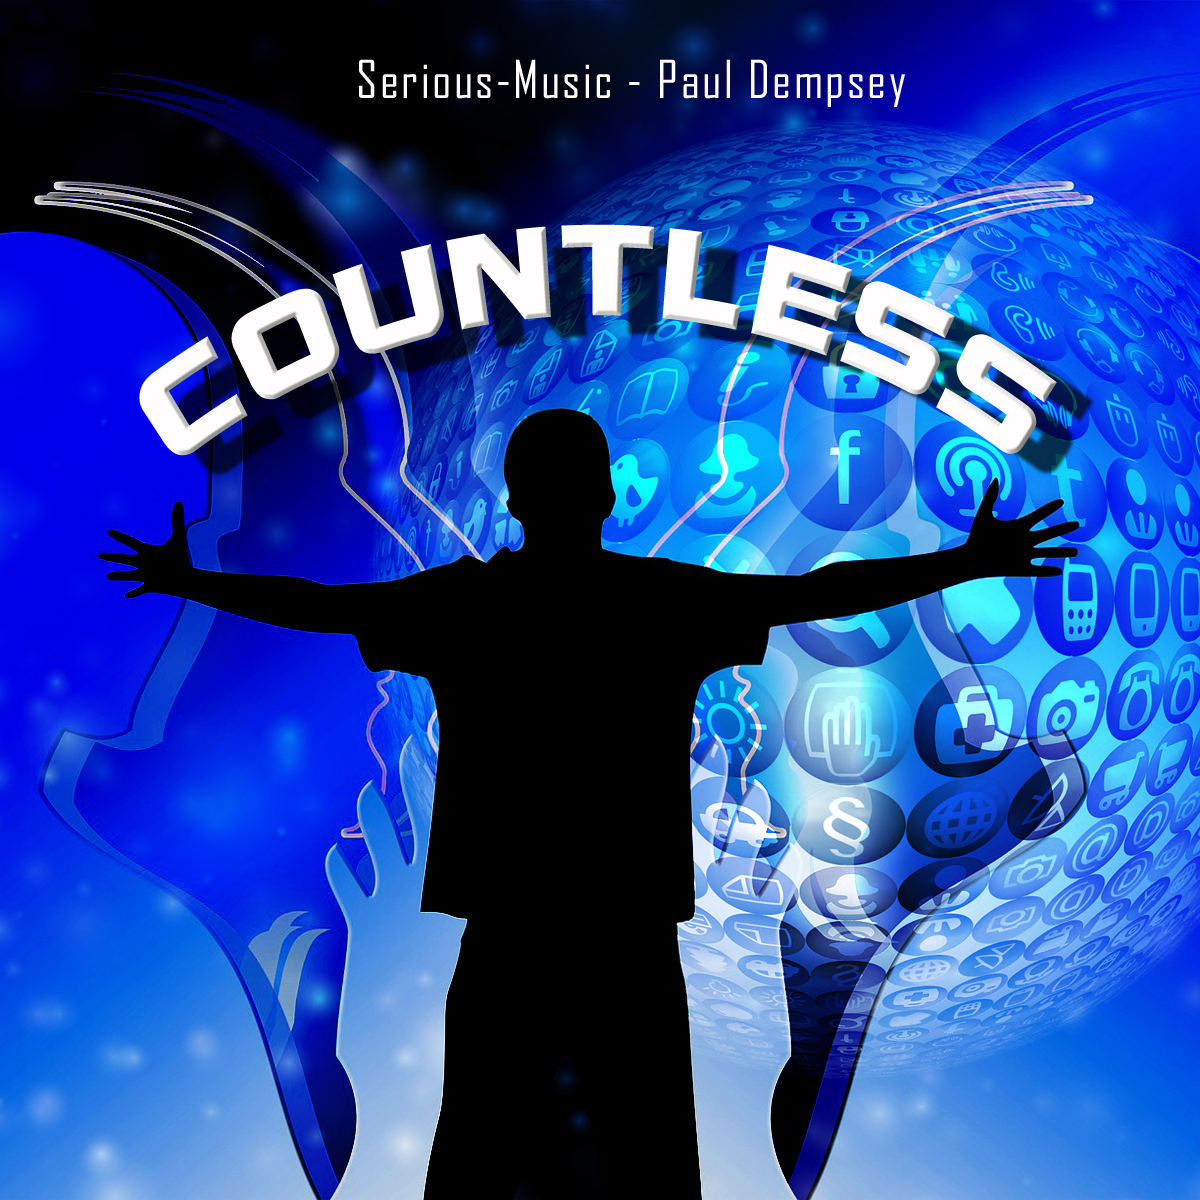 Countless feat. Paul Dempsey - Album A LIFE UNTOLD